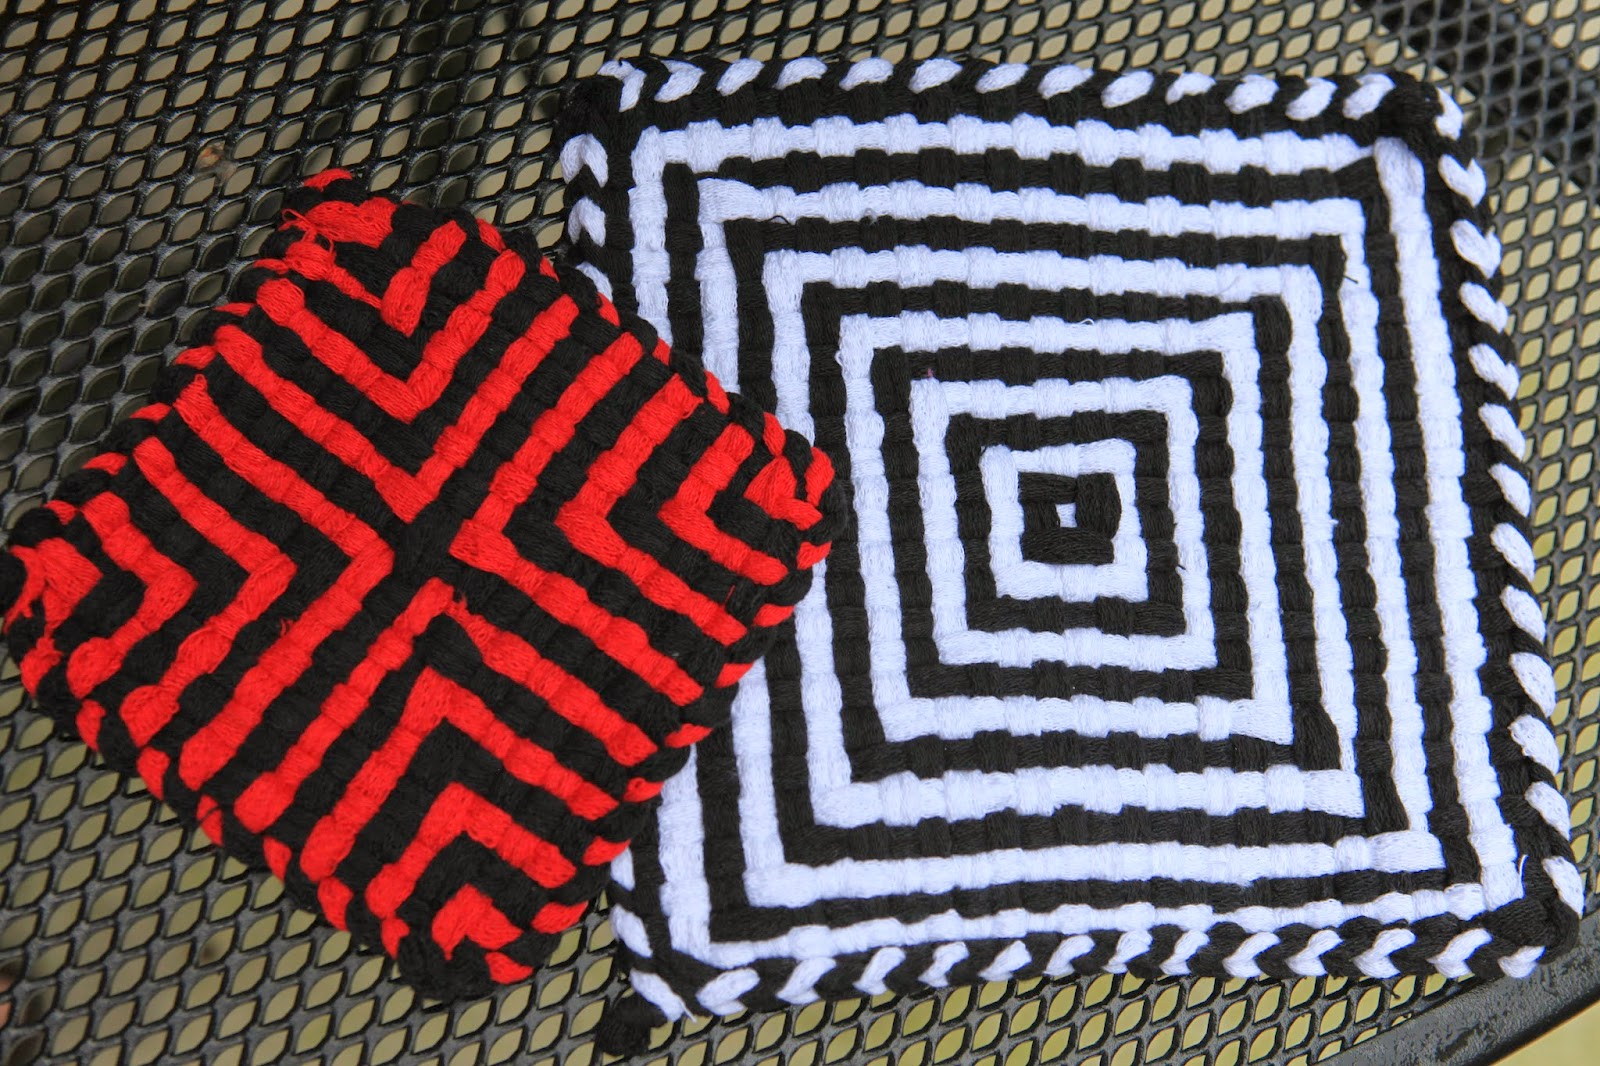 Today\'s Creations: Pot Holders on a Loom, Taking them to the next level!